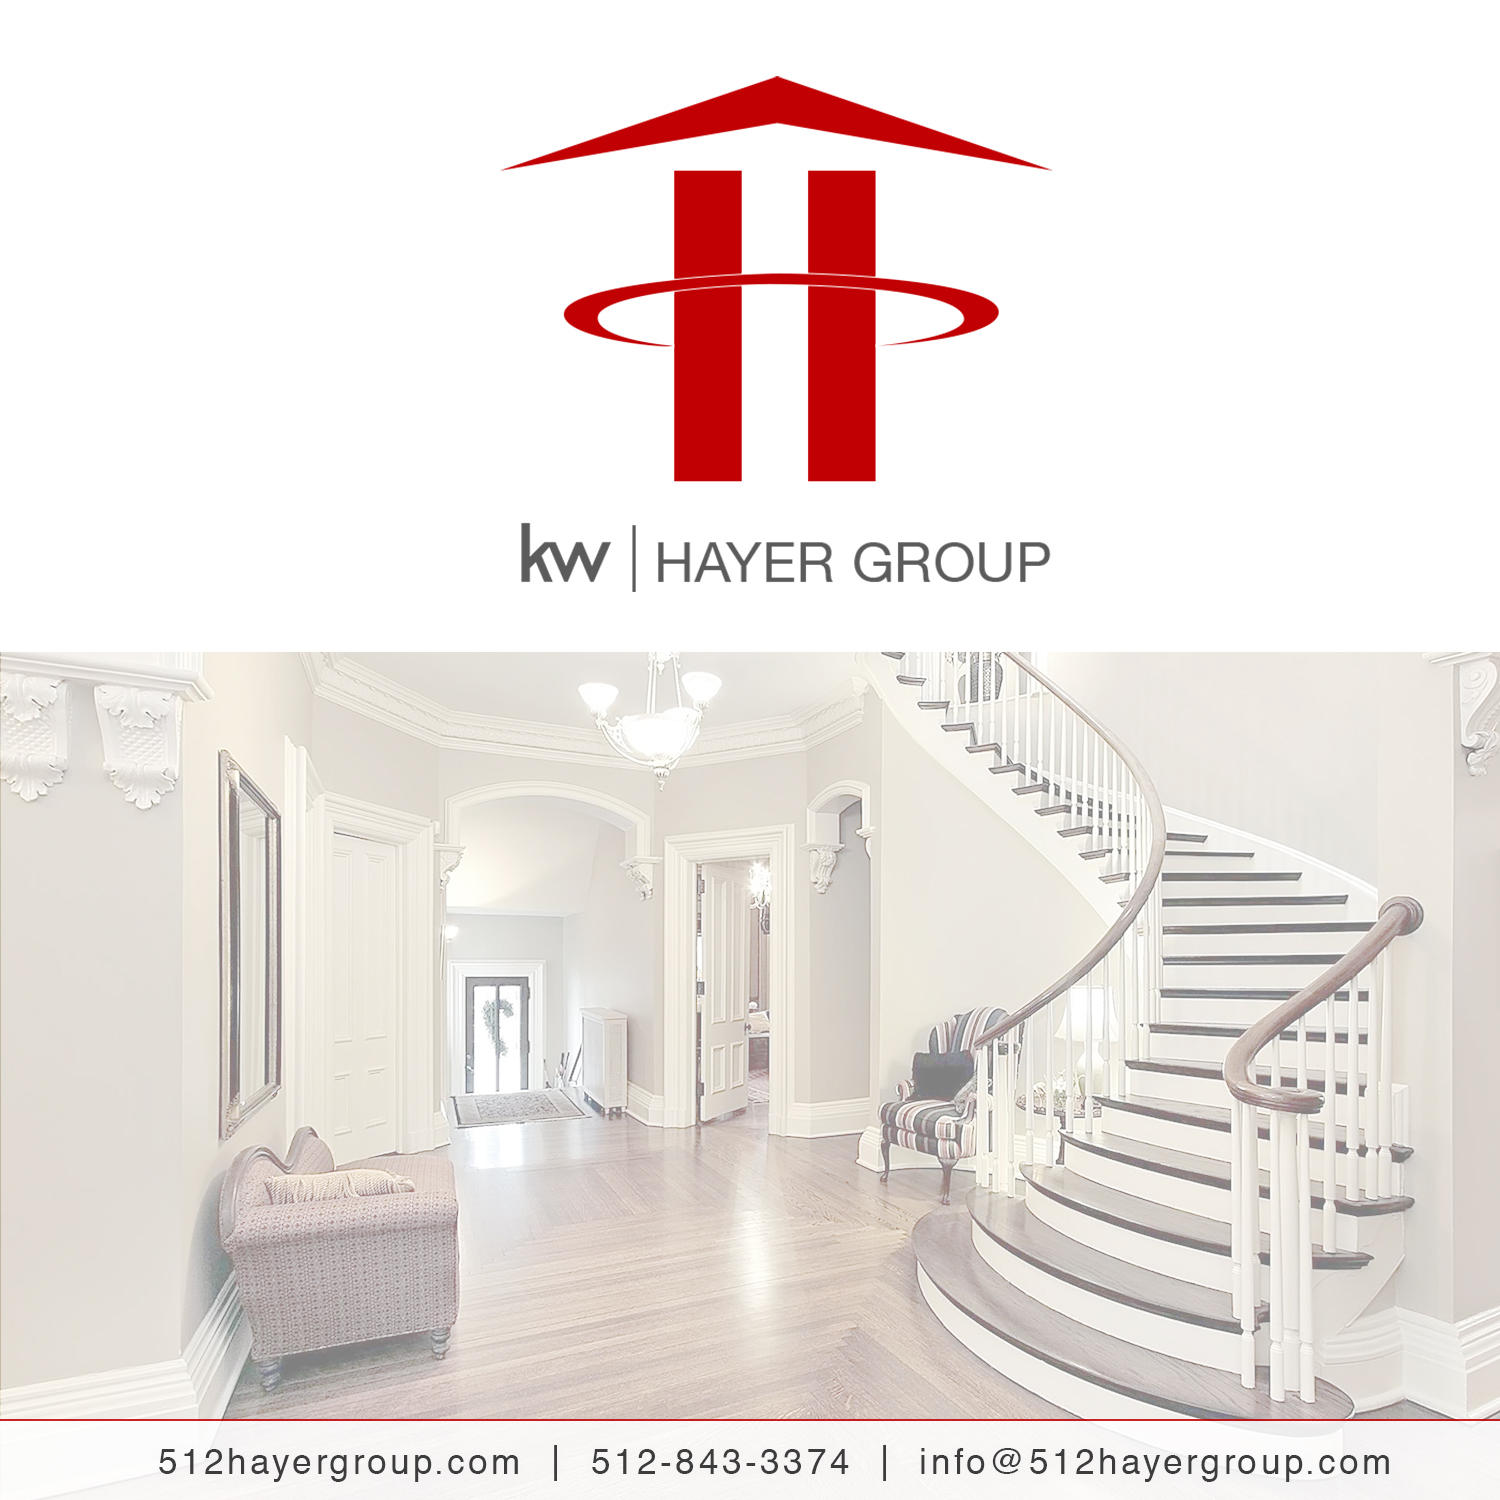 The Hayer Group - Keller Williams Realty